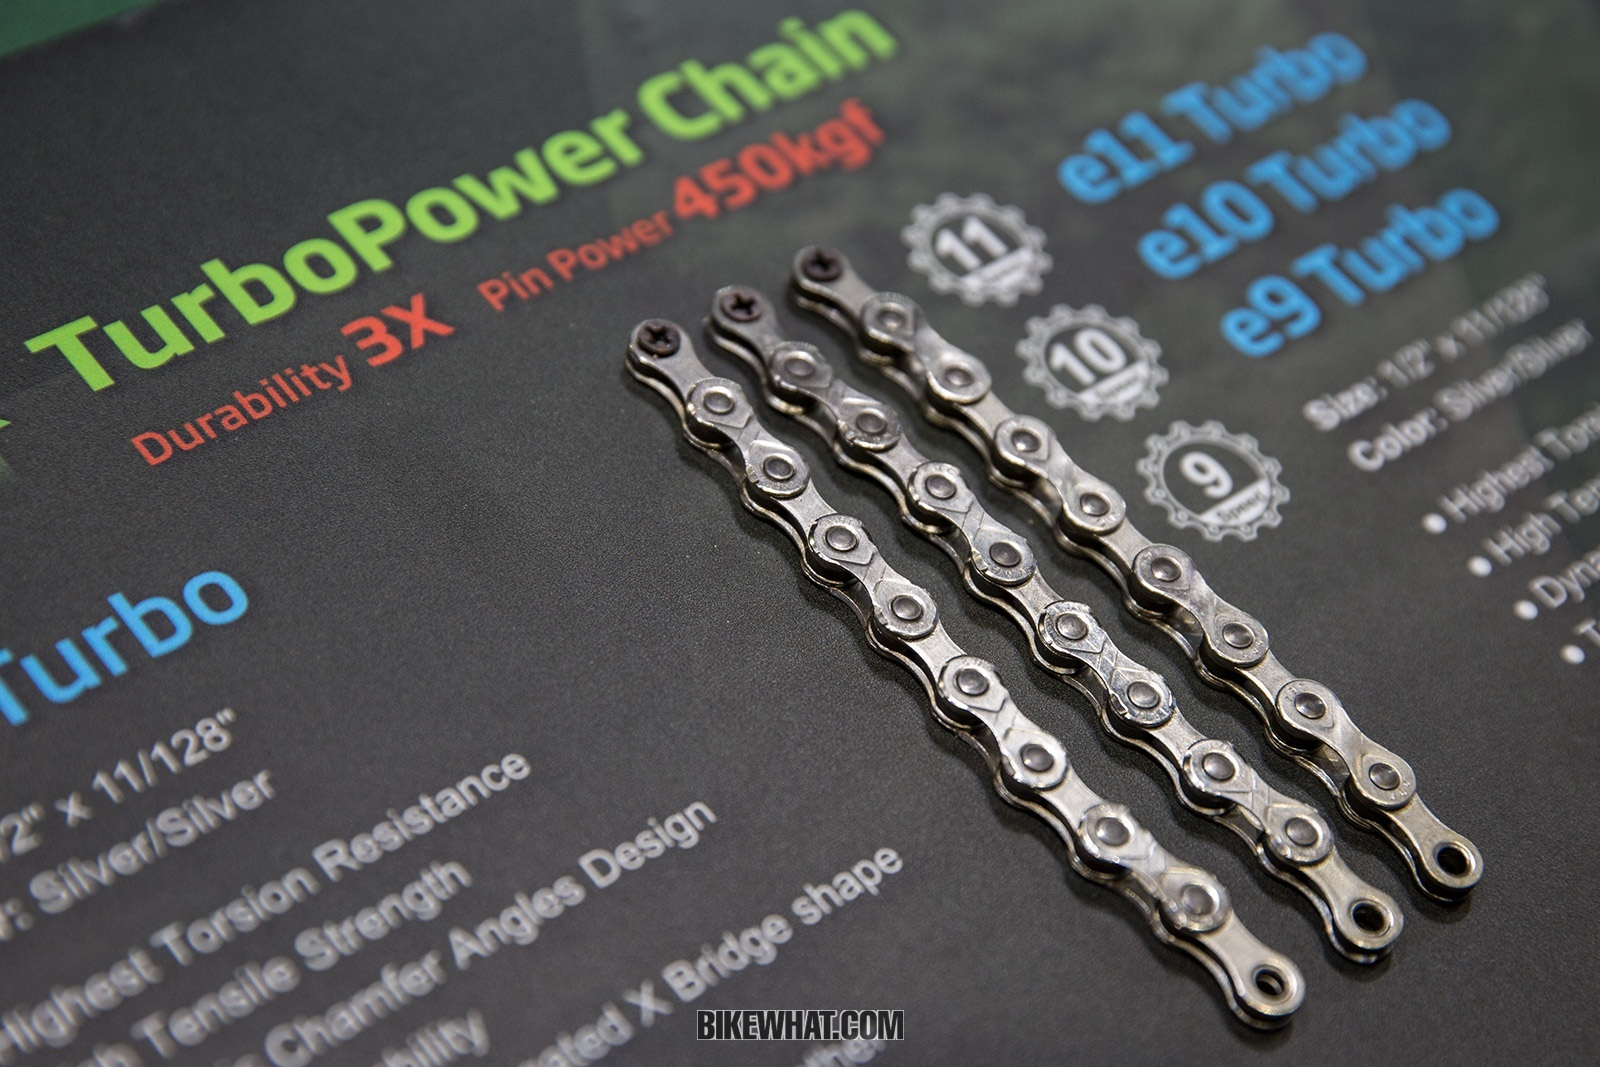 Feature_TaipeiCycle_2019_KMC_eBike_chain.jpg